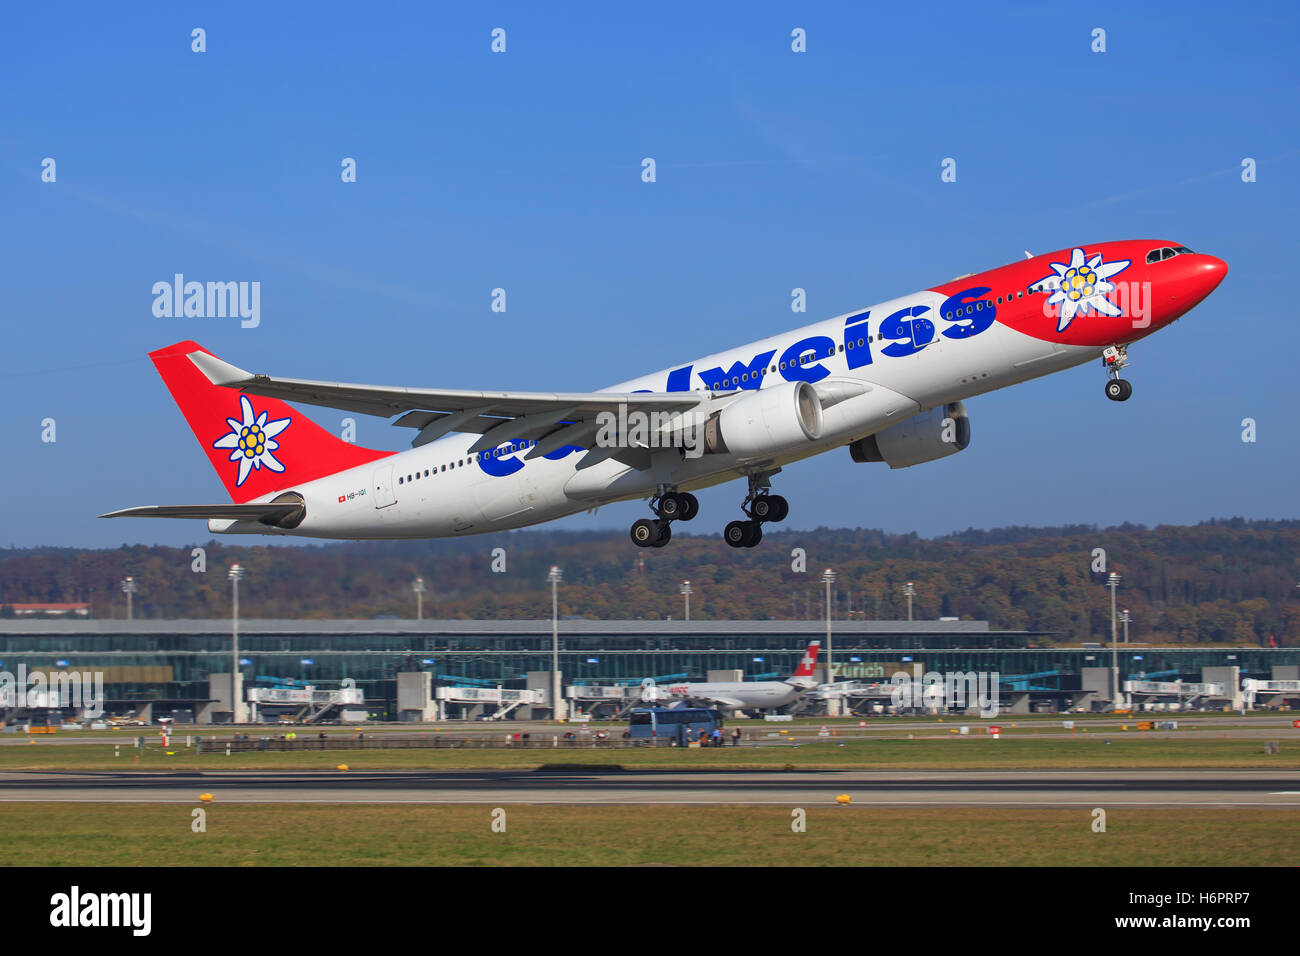 ZURICH - July 30: Edelweiss A330 take off at Terminal A of Zurich Airport on July 30, 2016 in Zurich, Switzerland - Stock Image